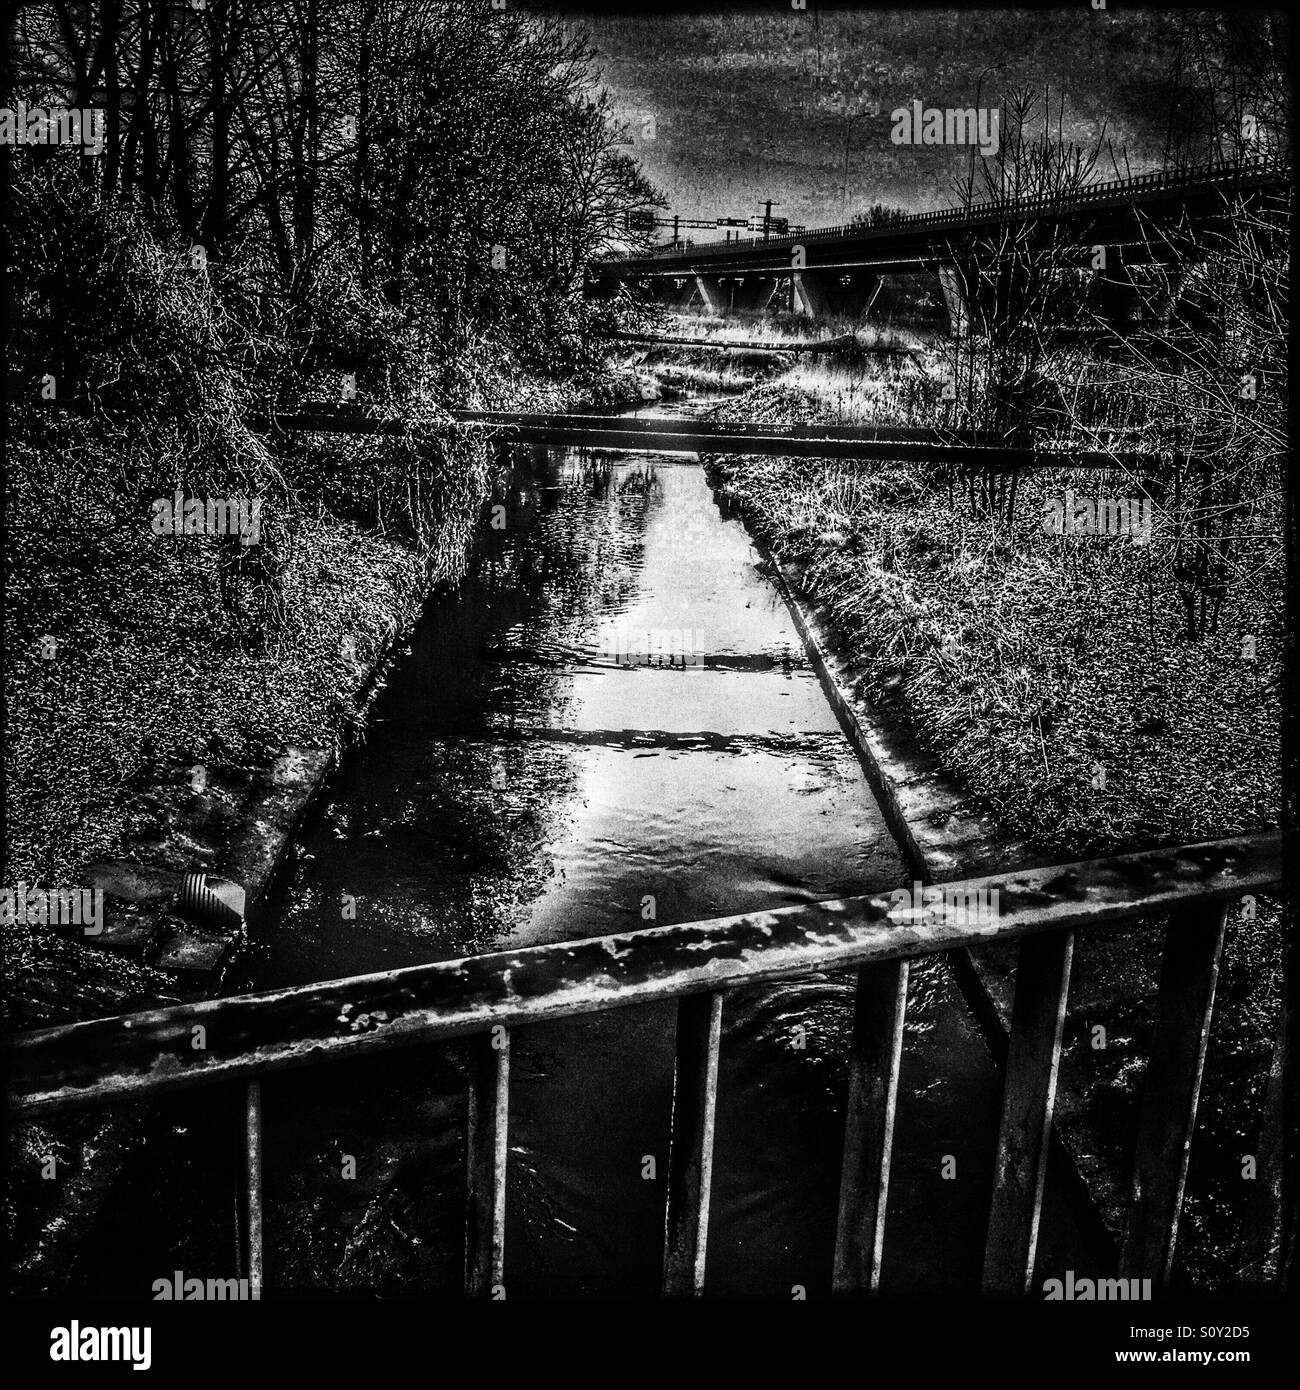 Apocalyptic view of river and viaduct in white and black - Stock Image